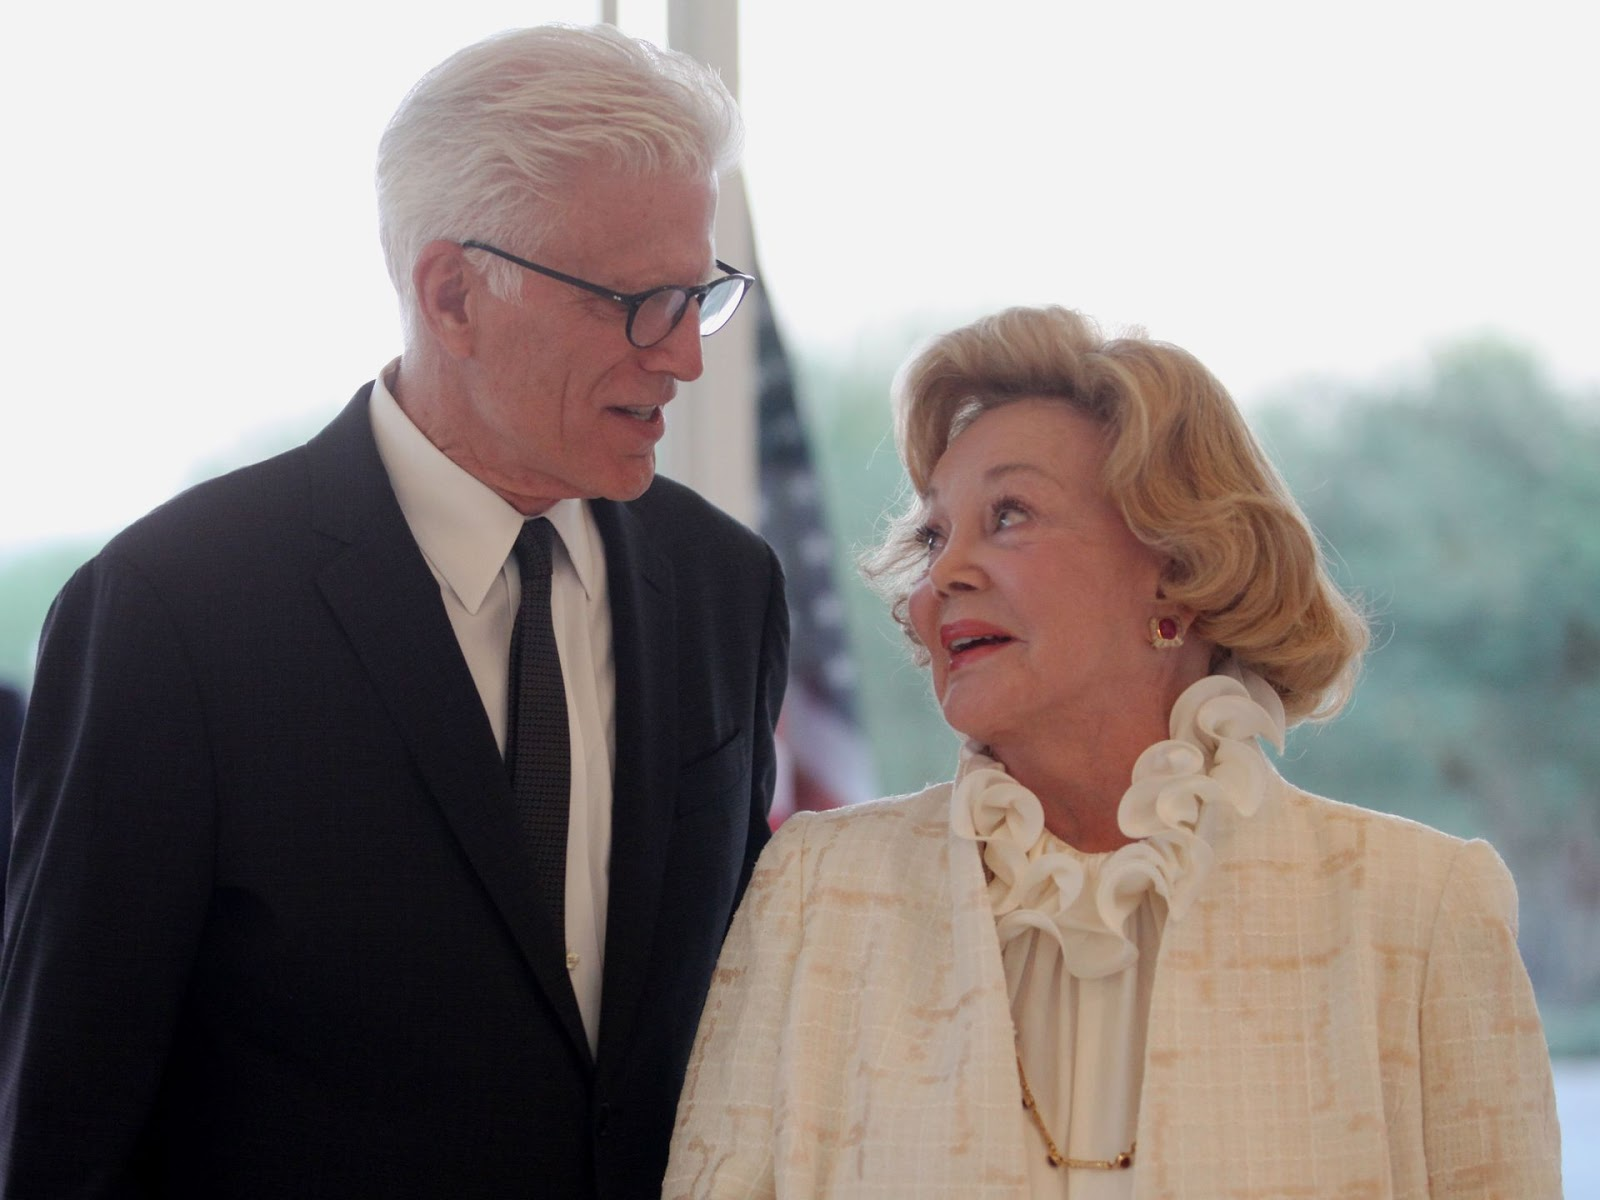 Actor Ted Danson talks to Barbara Sinatra before the start of the Prince Albert II of Monaco Foundation Awards held at Sunnylands on Sunday